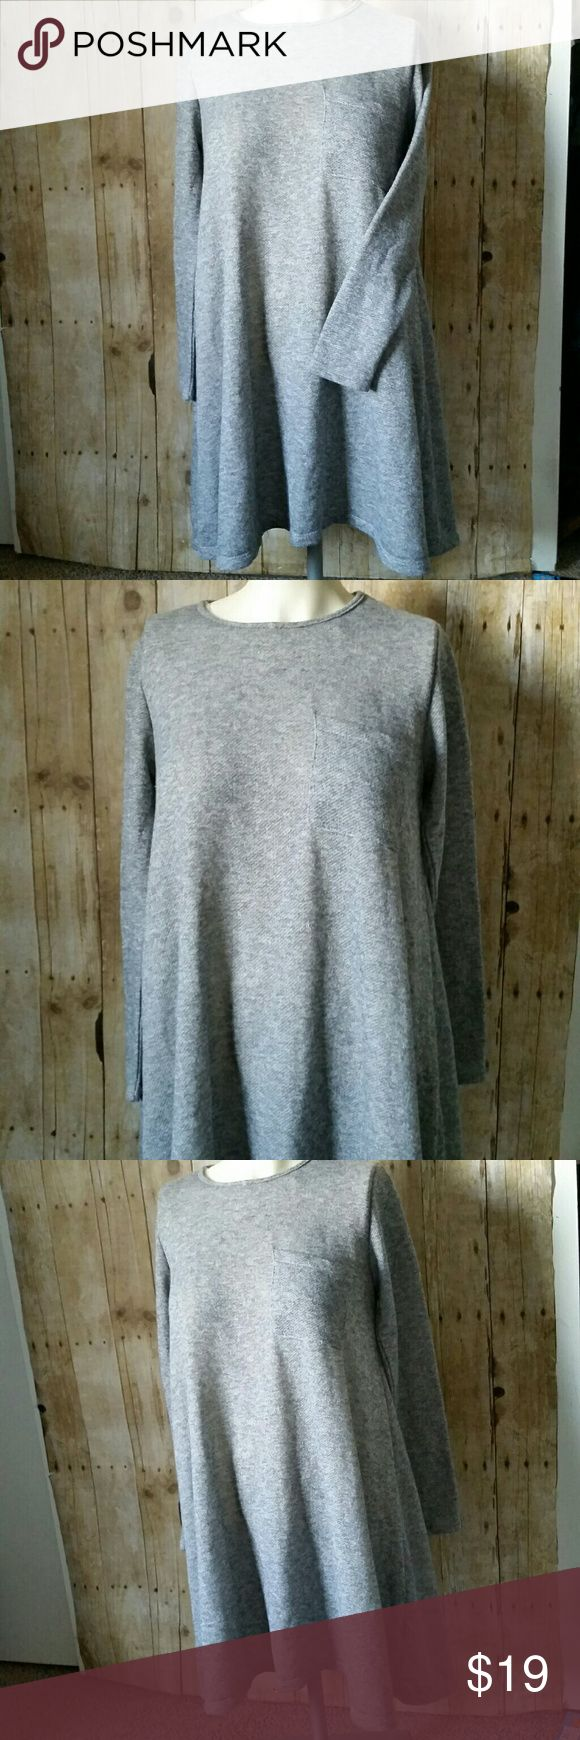 """Peach Love California Sweater Knit Dress Small Heather gray knit long sleeve sweater dress. Would also work as a tunic.  On the lighter side. Pocket at the fitted bust and flows into a relaxed shape. Preowned in good condition with no rips, holes, tears or stains. Size small  Pit to Pit 18.5"""" Top of shoulder to bottom hem 35"""" Peach Love California Dresses"""